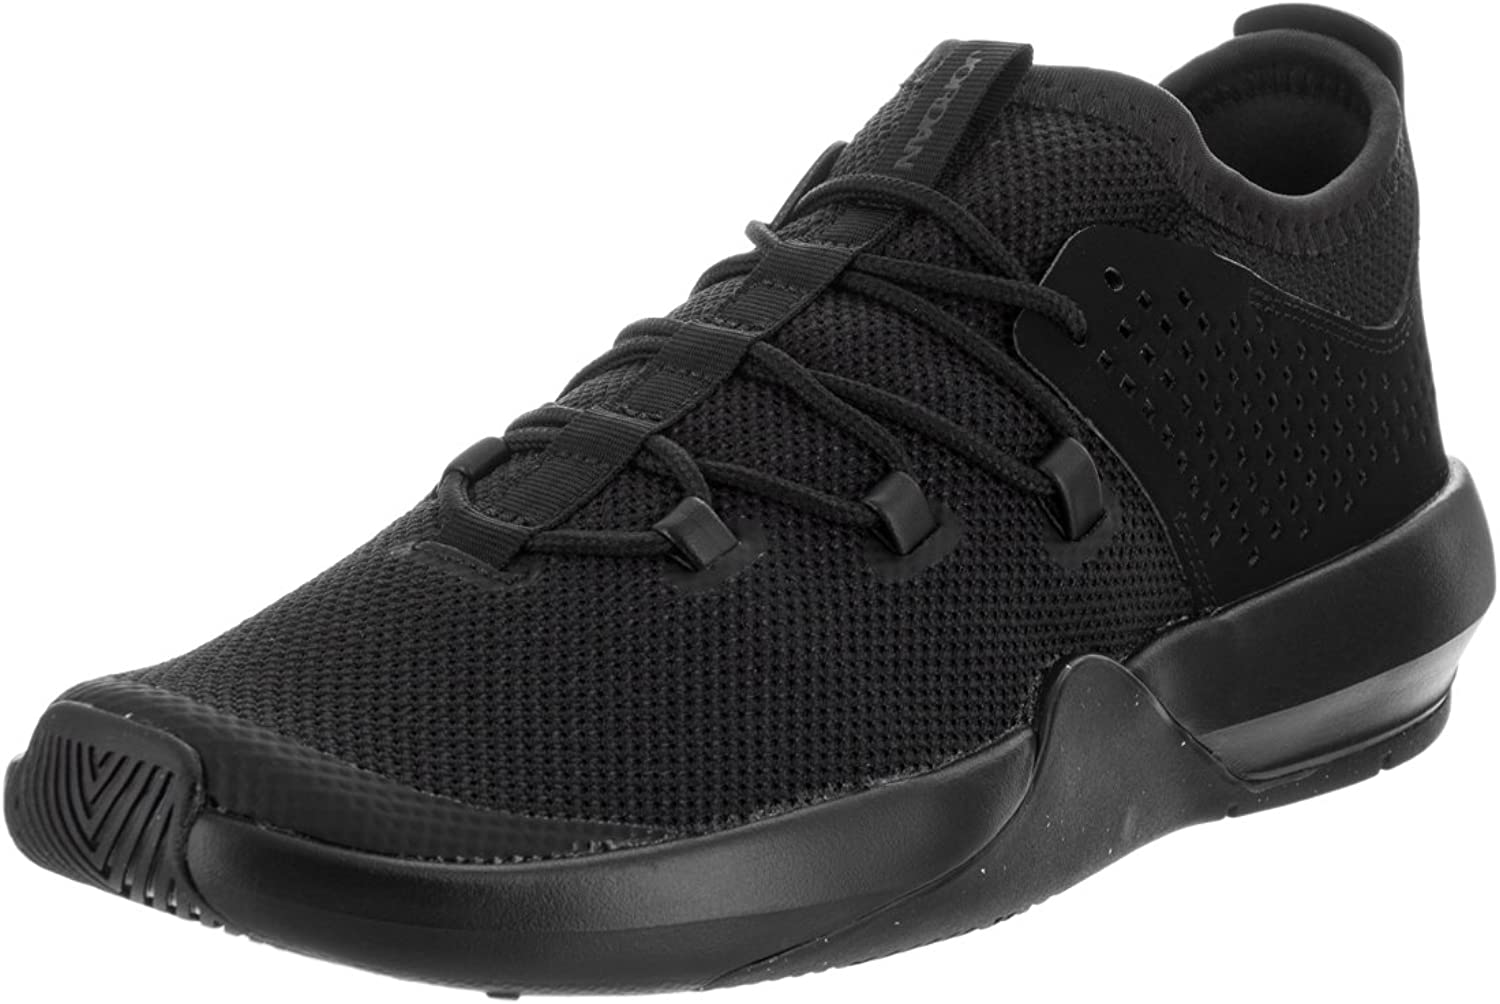 Jordan Nike Men's Express Black Black Black Basketball shoes 10 Men US